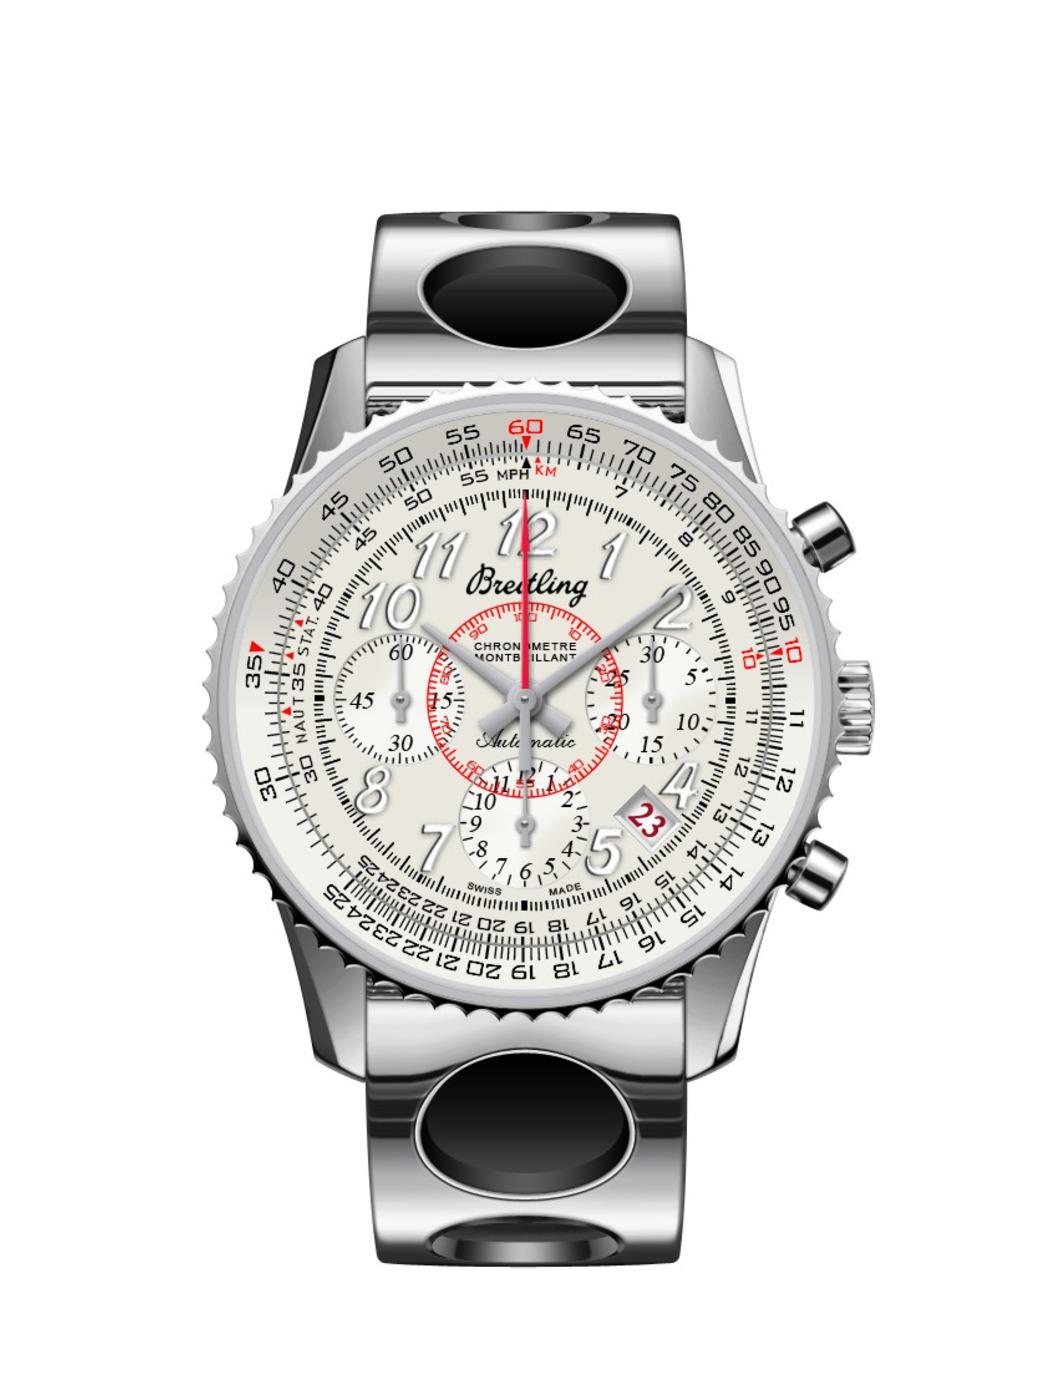 AB013012/G735-air-racer-steel